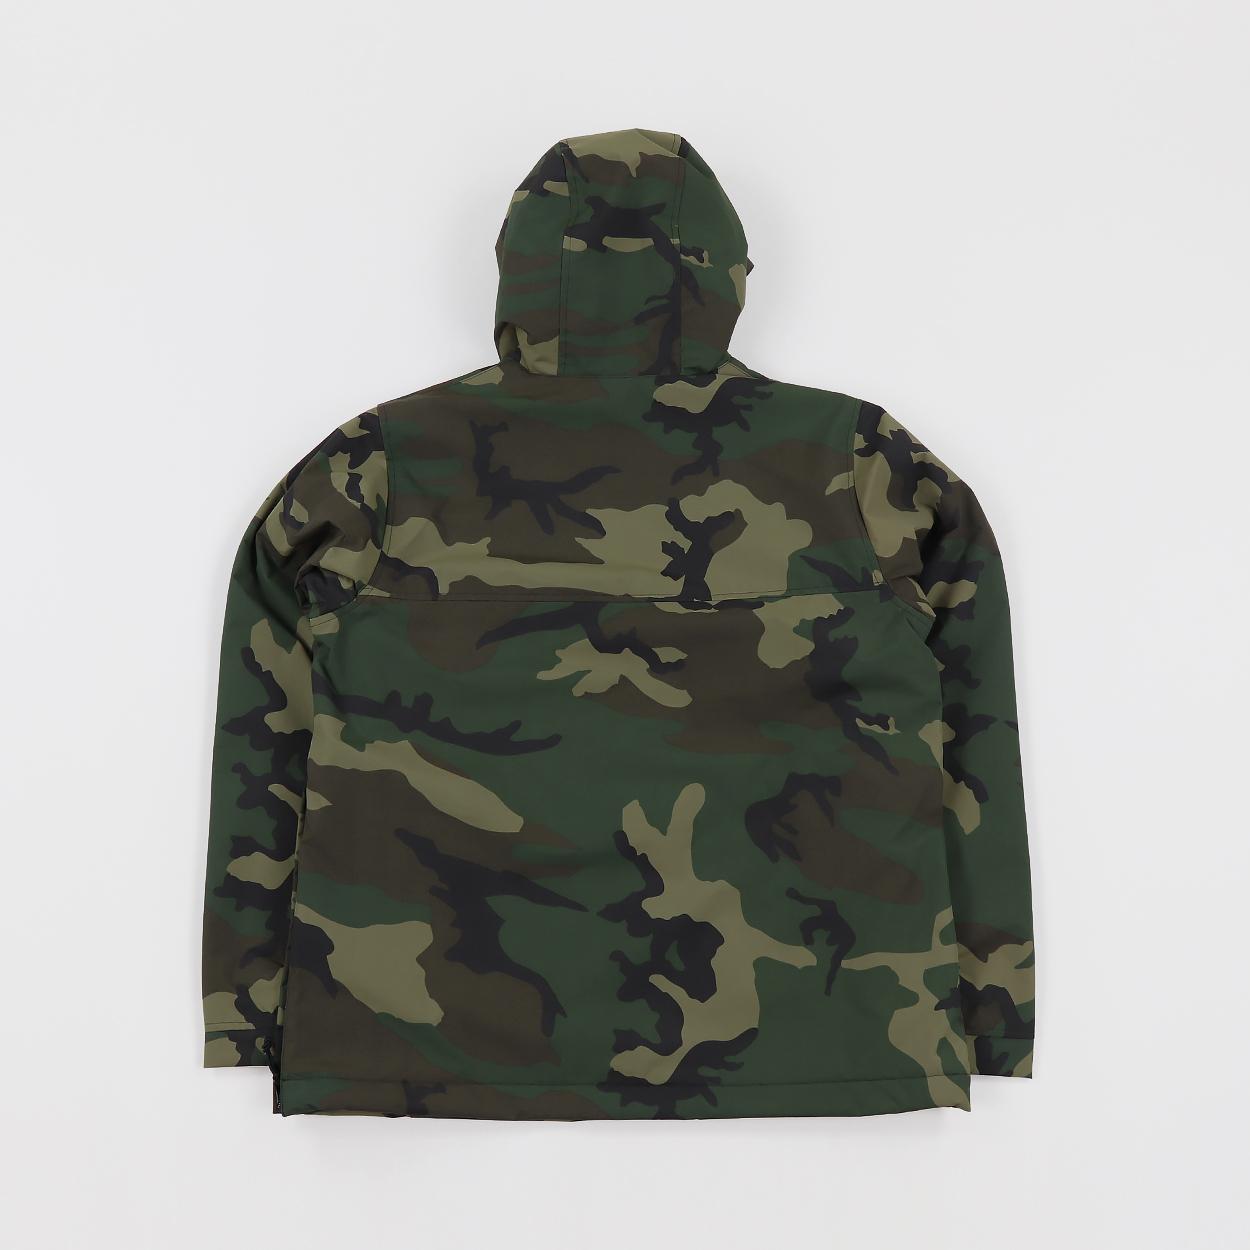 c8dfcf4a A pullover style jacket from Carhartt Work In Progress. The Nimbus features  a zipped kangaroo pocket and a side zip for ventilation.